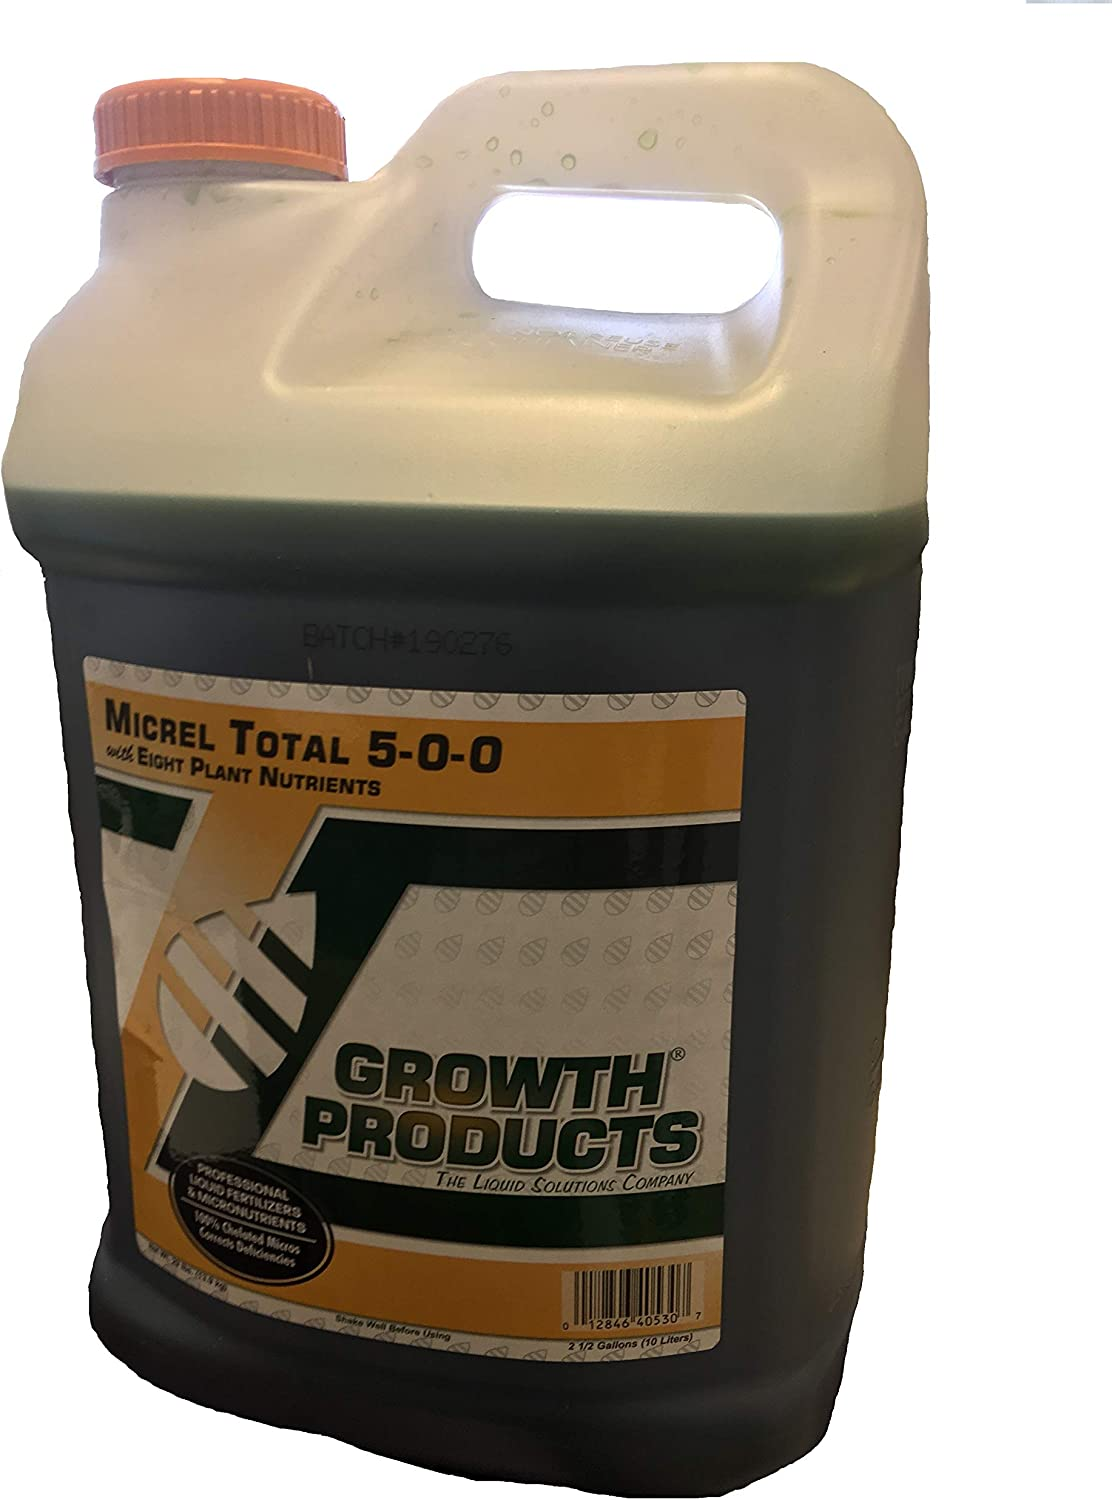 Micrel Total 5-0-0 with Eight Plant Nutrients: N 5%, Mg 0.5%, S 4%, B 0.02%, Cu 0.05%, Fe 6%, Mn 0.5%, Zn 0.5%. Professional Liquid Fertilizer and Micronutrients 100% Chelated Micros 2.5 Gallon